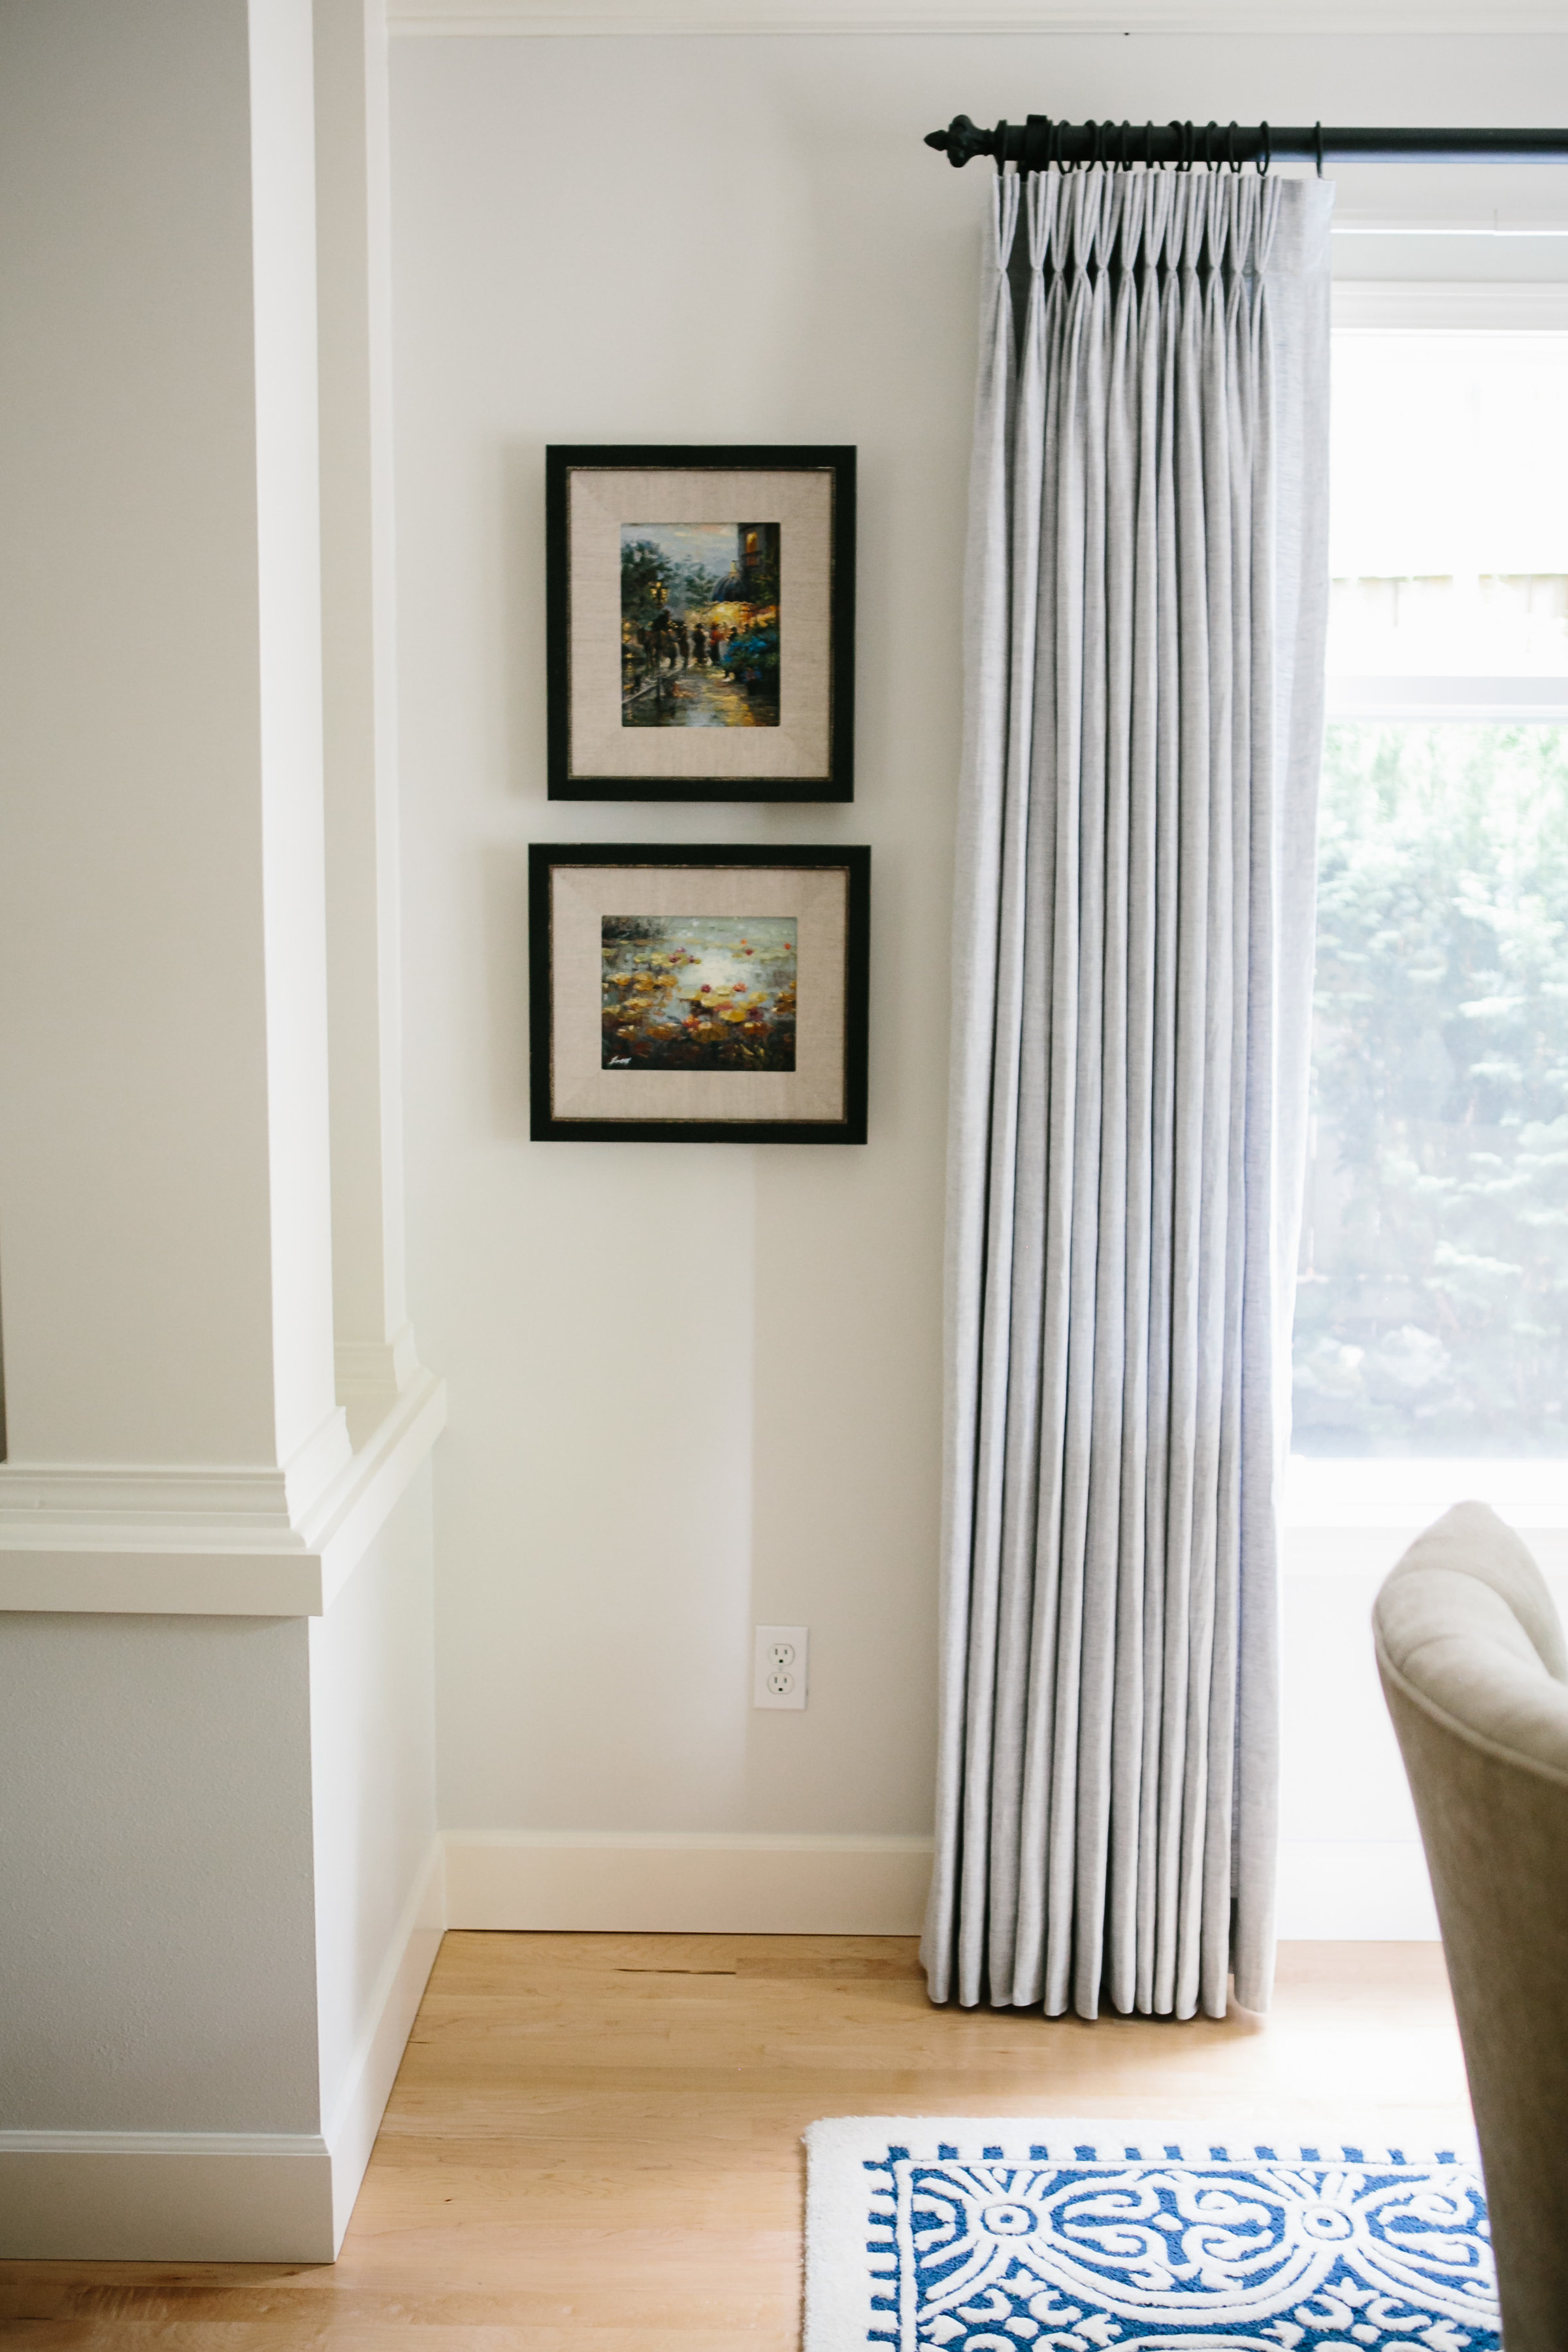 Ripple fold drapery in a Kirkland, Washington home with blonde hardwood floors and a navy blue rug.